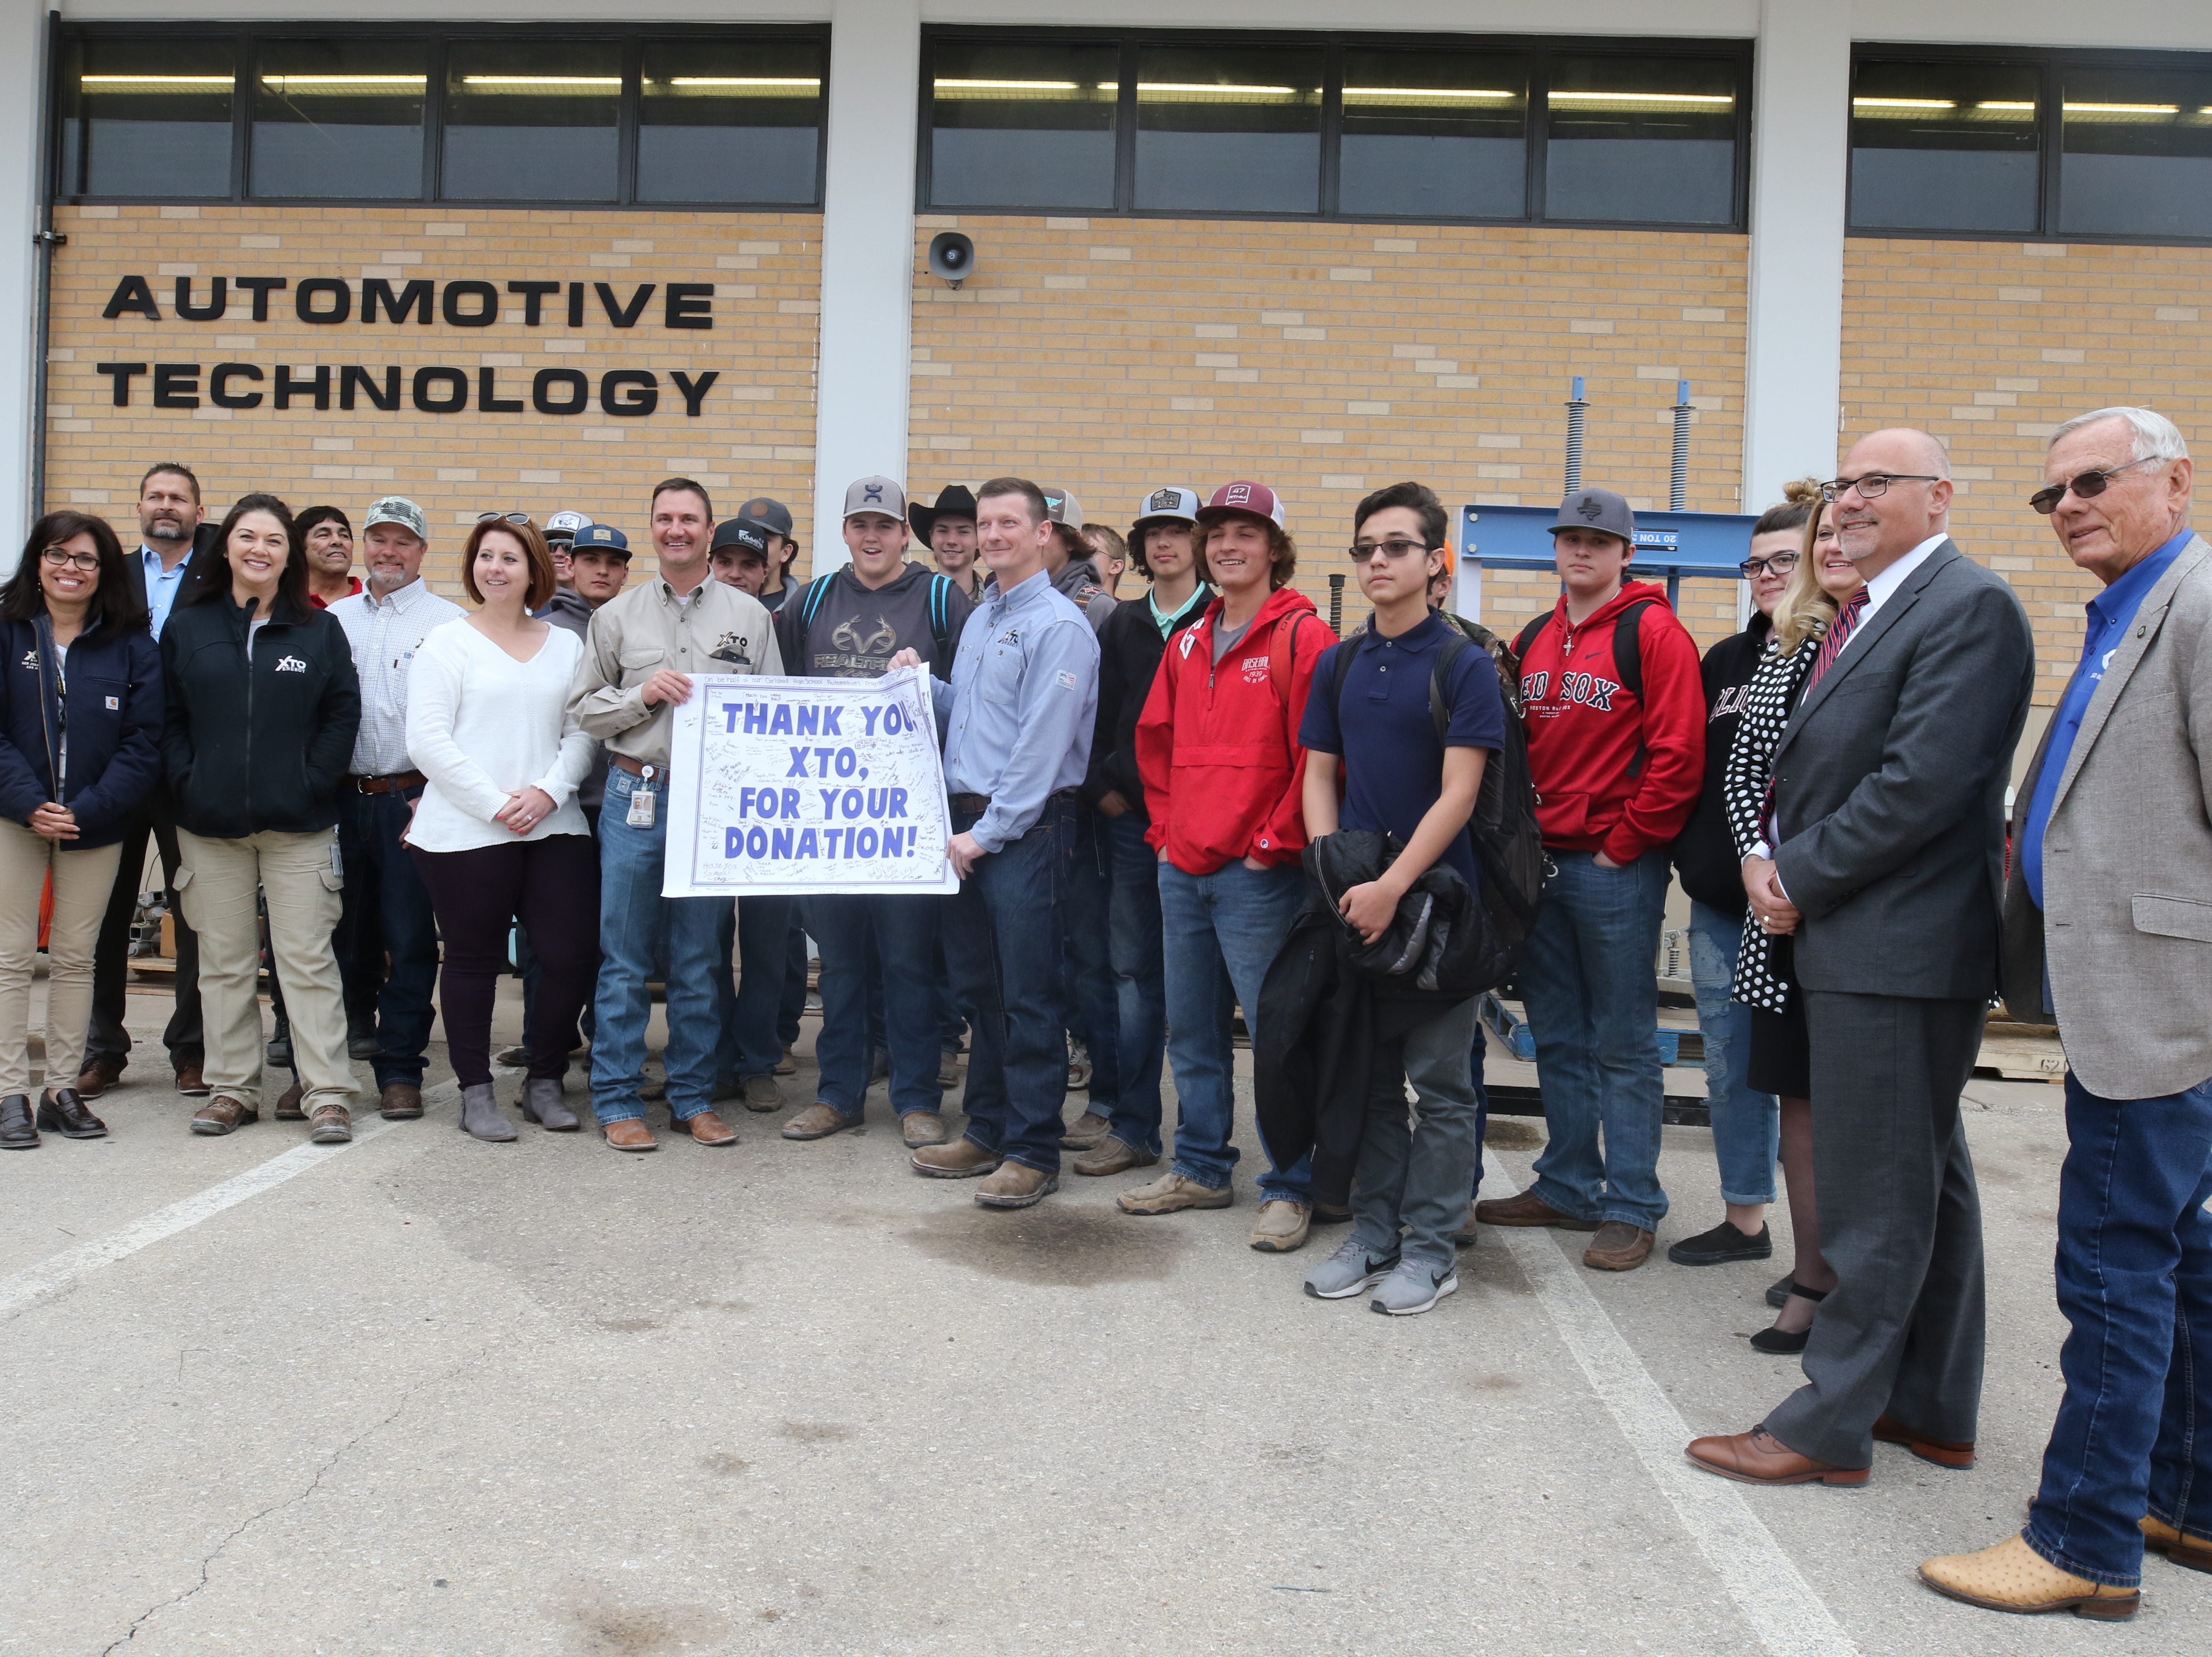 Officials from XTO Energy are presented with a commemorative banner from automotive students and staff, March 11, 2019 at Carlsbad High School.